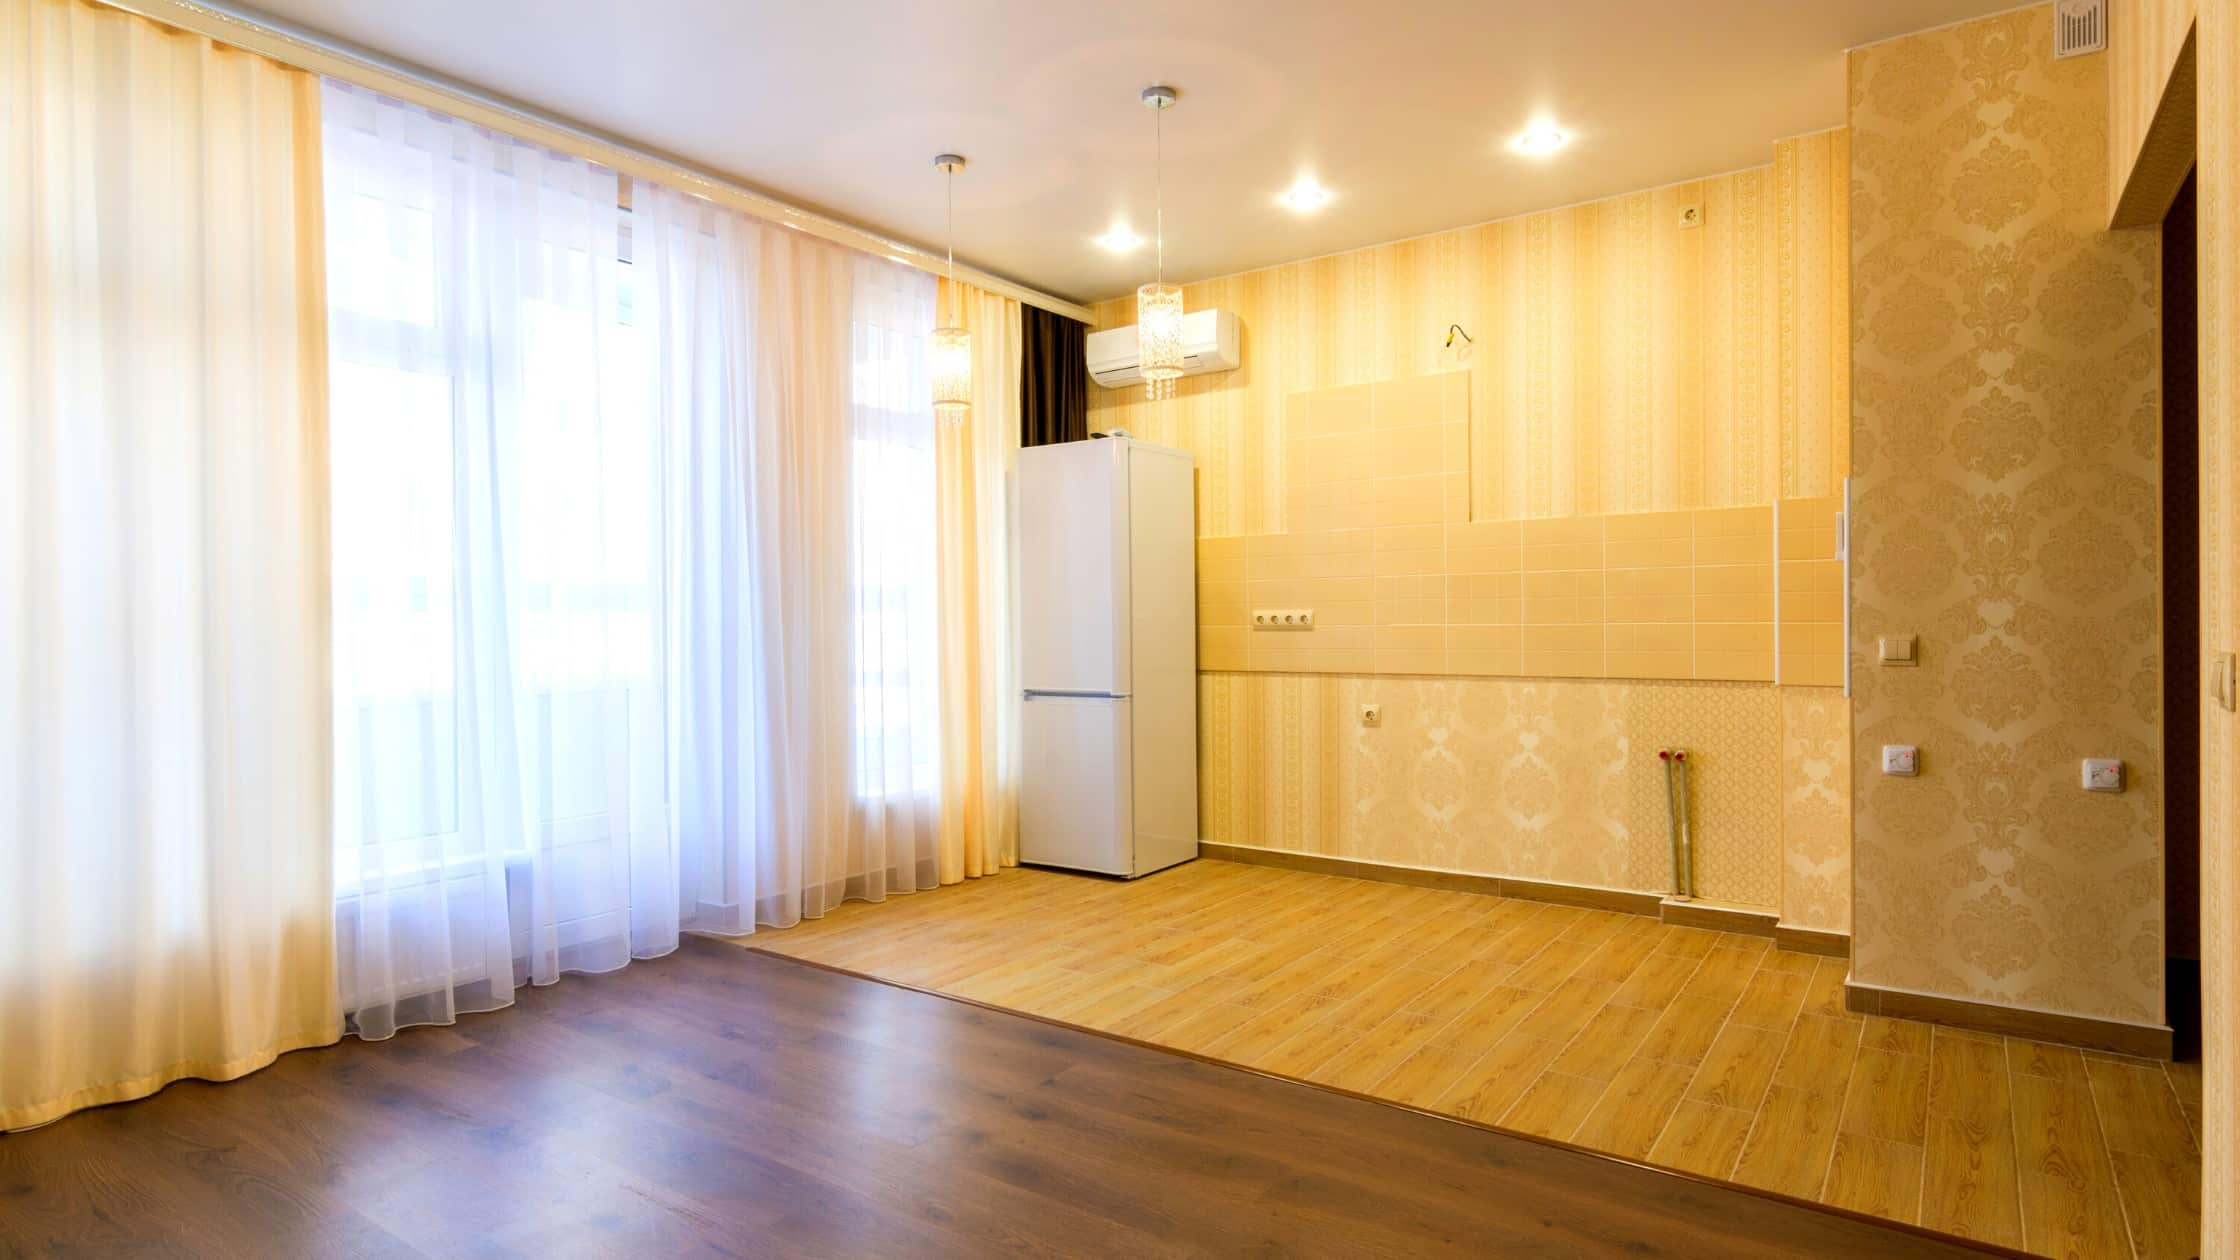 Living room is perfectly decorated by lights and brownish wallpaper